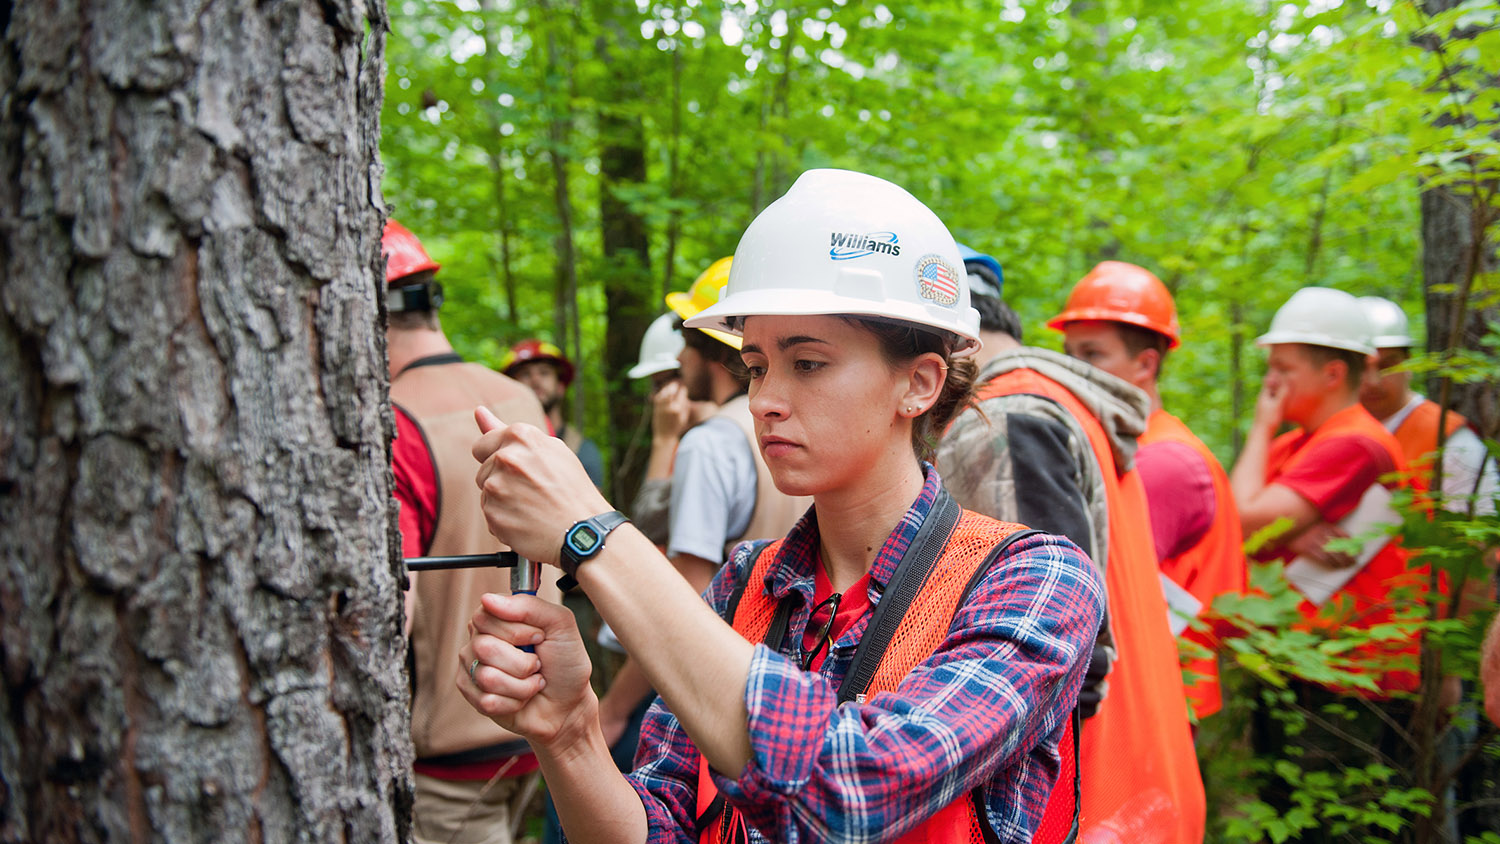 student in the field in the forest - About - Forestry and Environmental Resources Spotlight: William Casola - Forestry and Environmental Resources NCState University